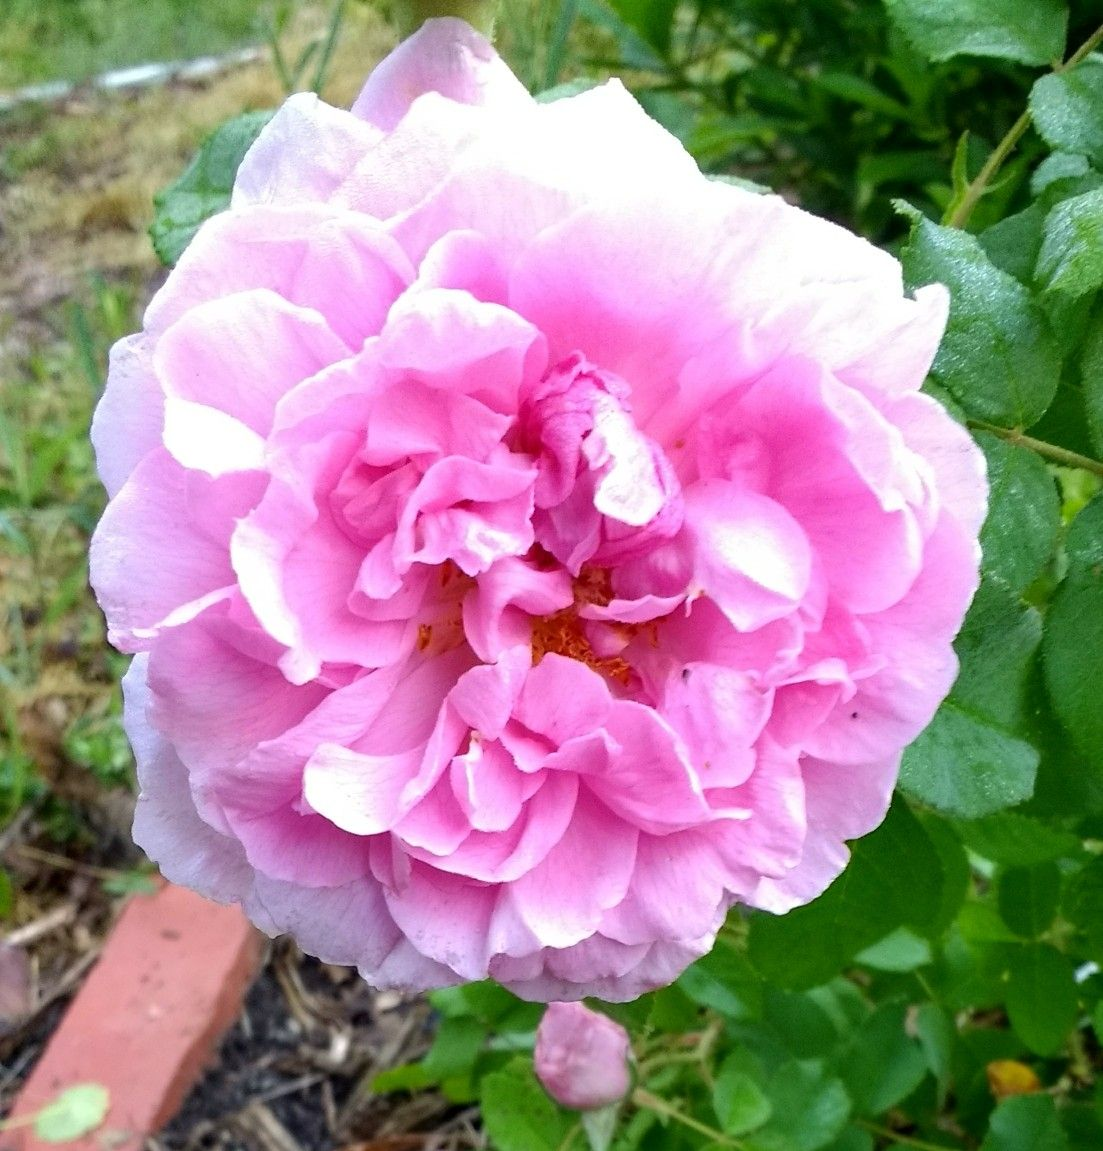 one of two roses i lost track of. pink gruss an aachen? comte de